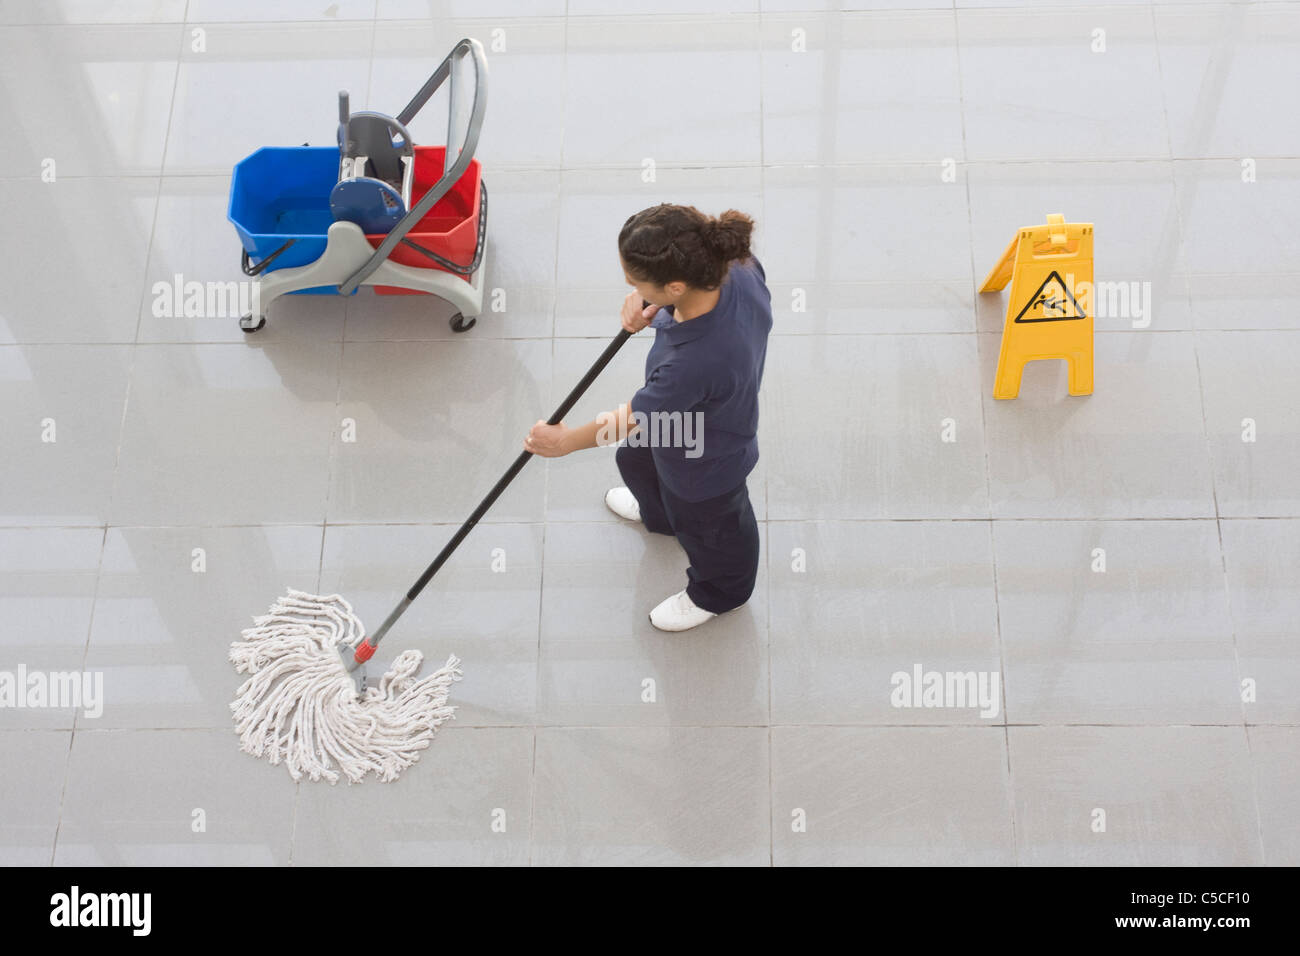 cleaning - Stock Image